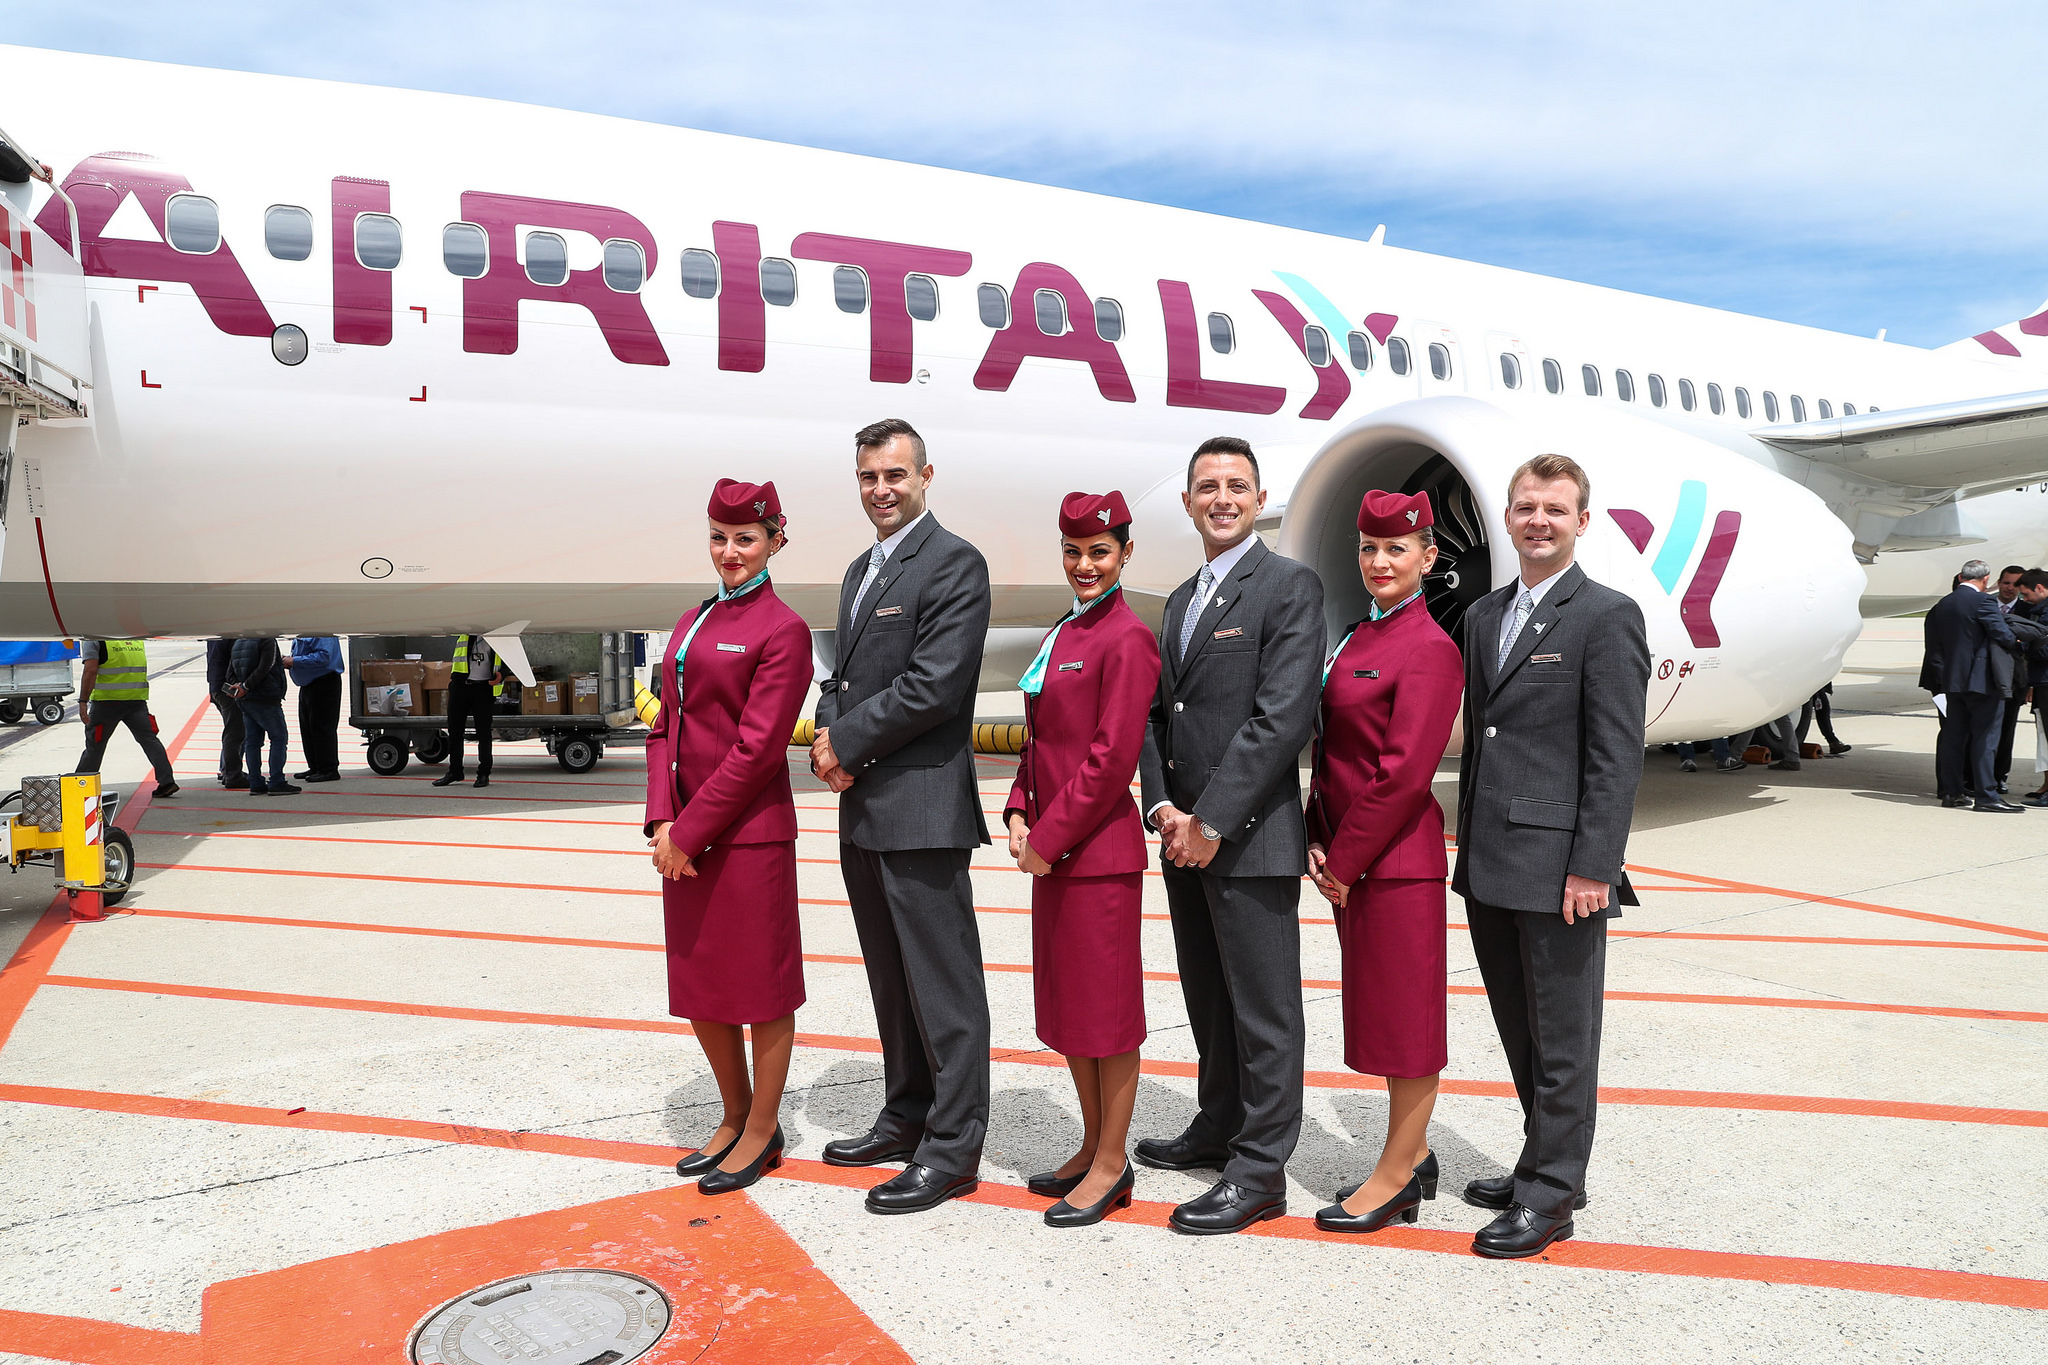 Air Italy's New Uniform Just Cements the Concern its Qatar Airways With a Different Name